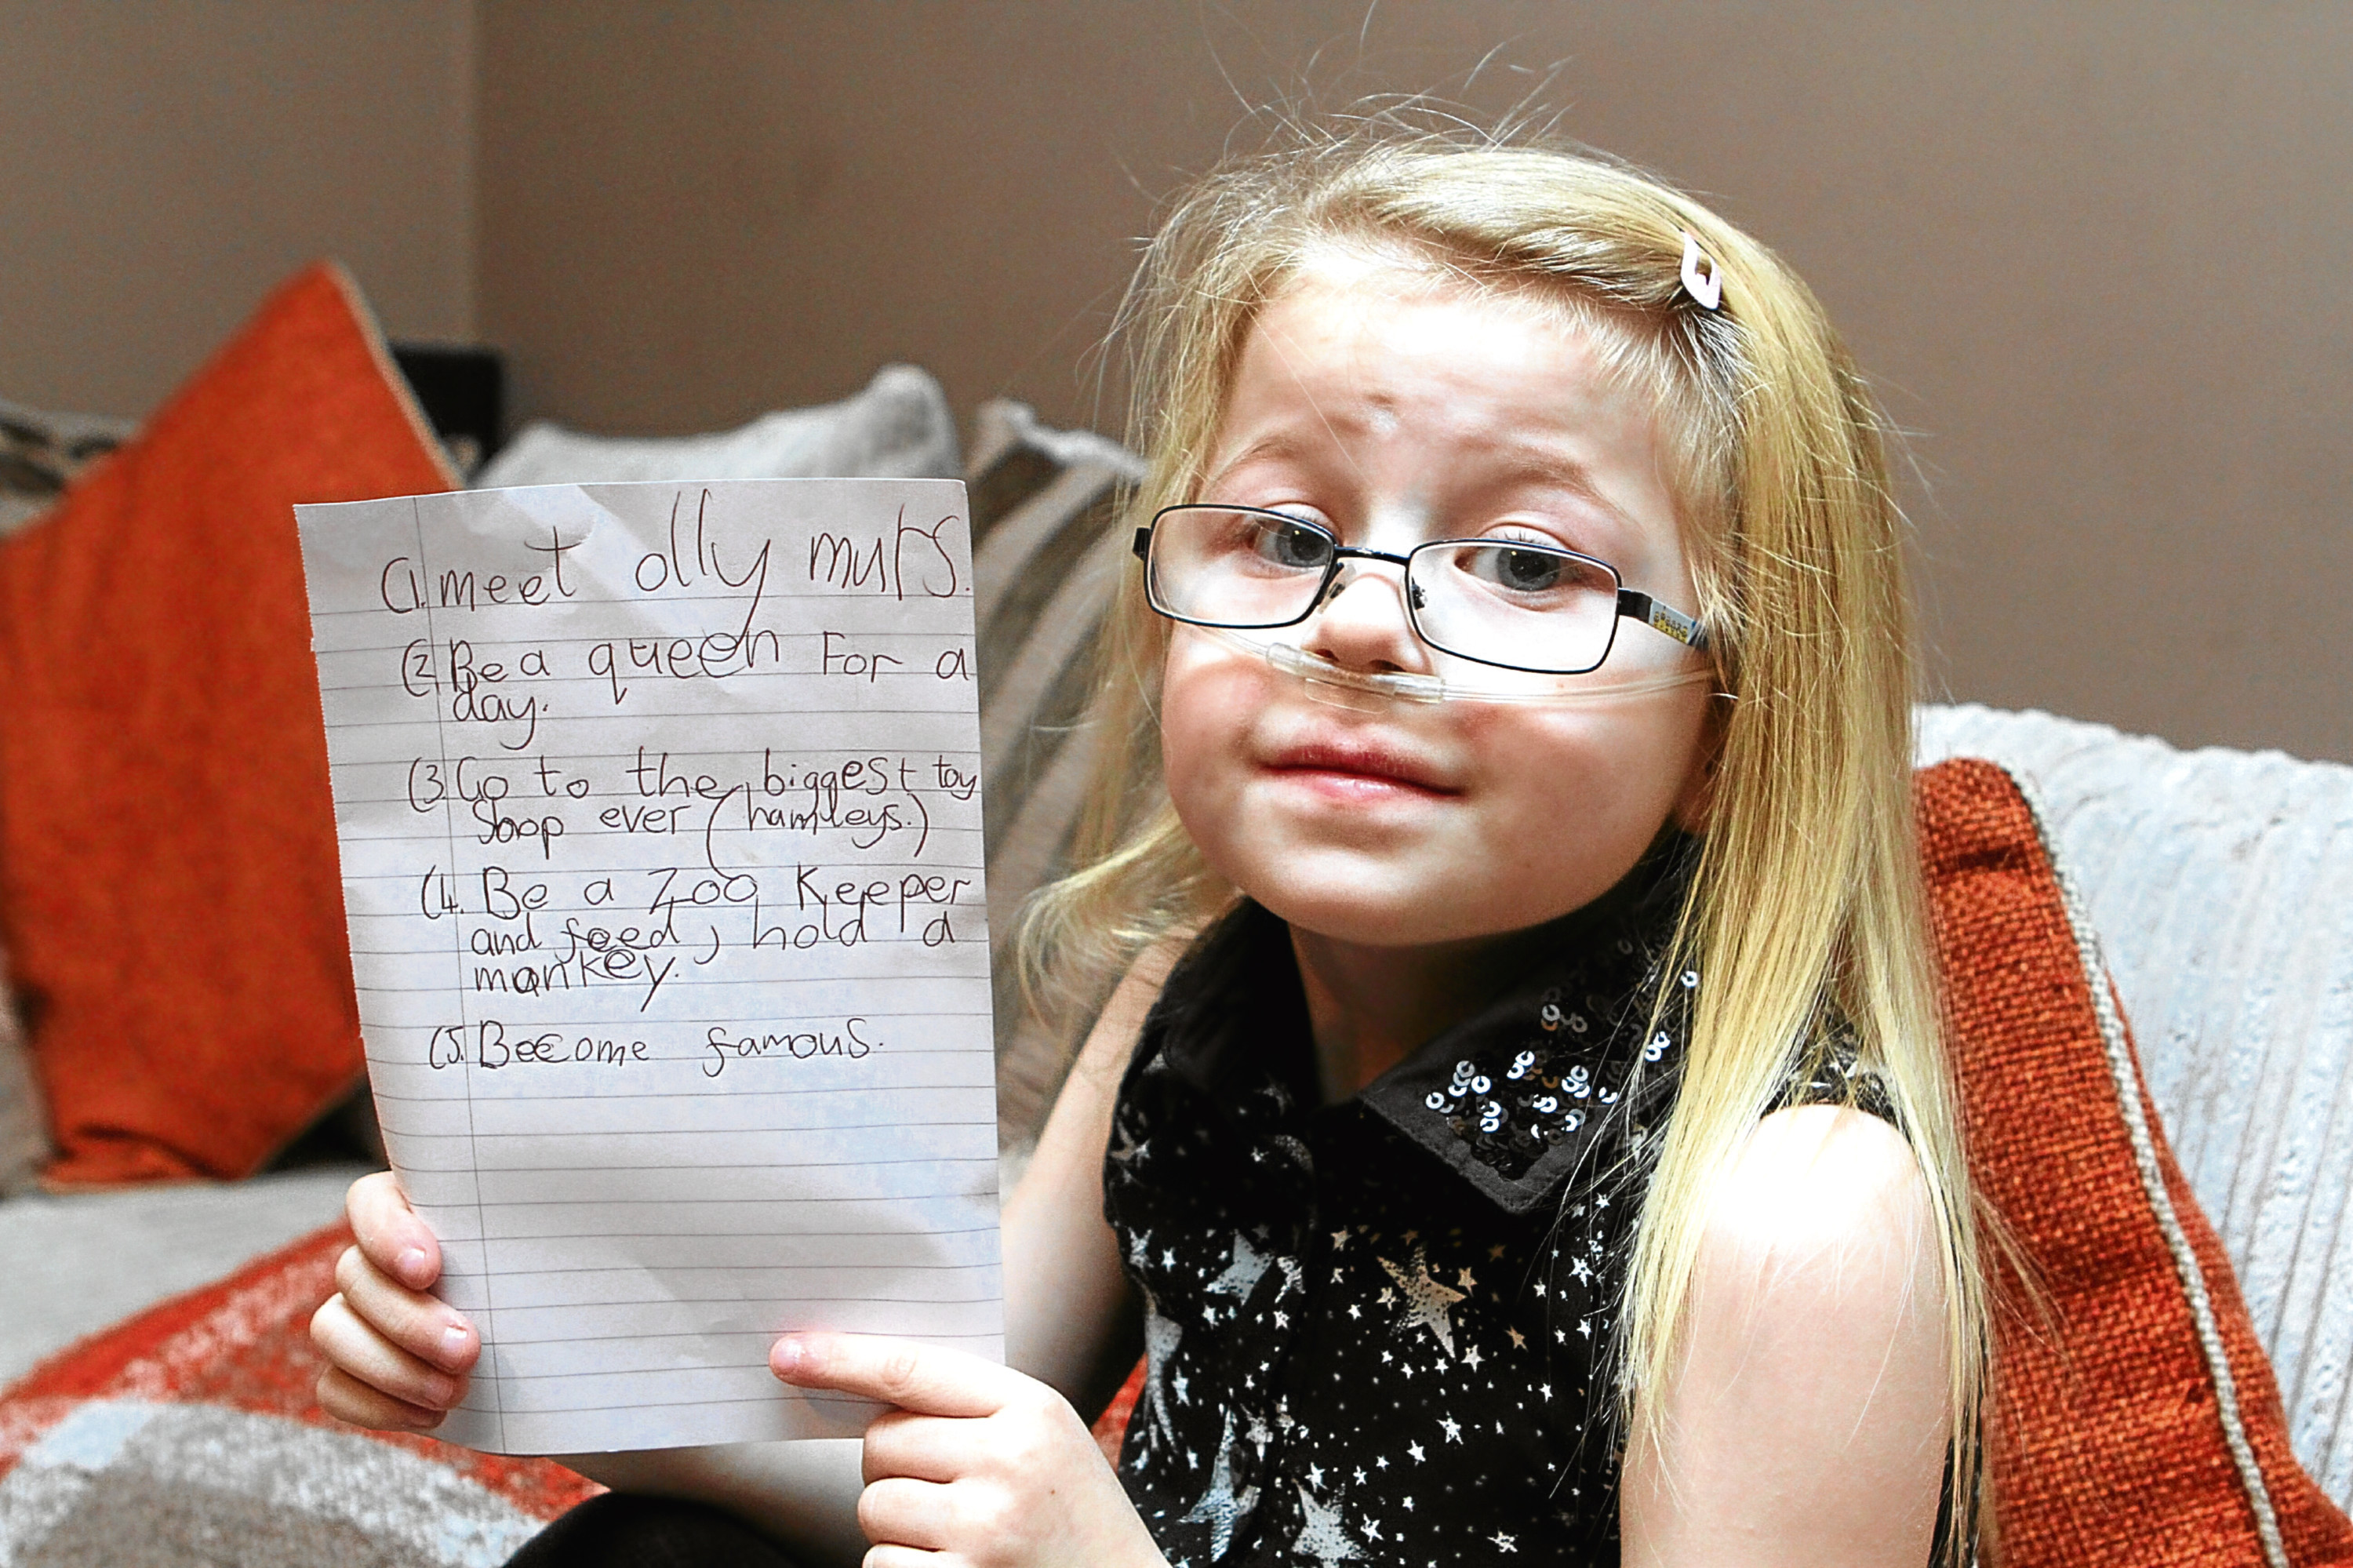 Ruby pictured with her wish list.